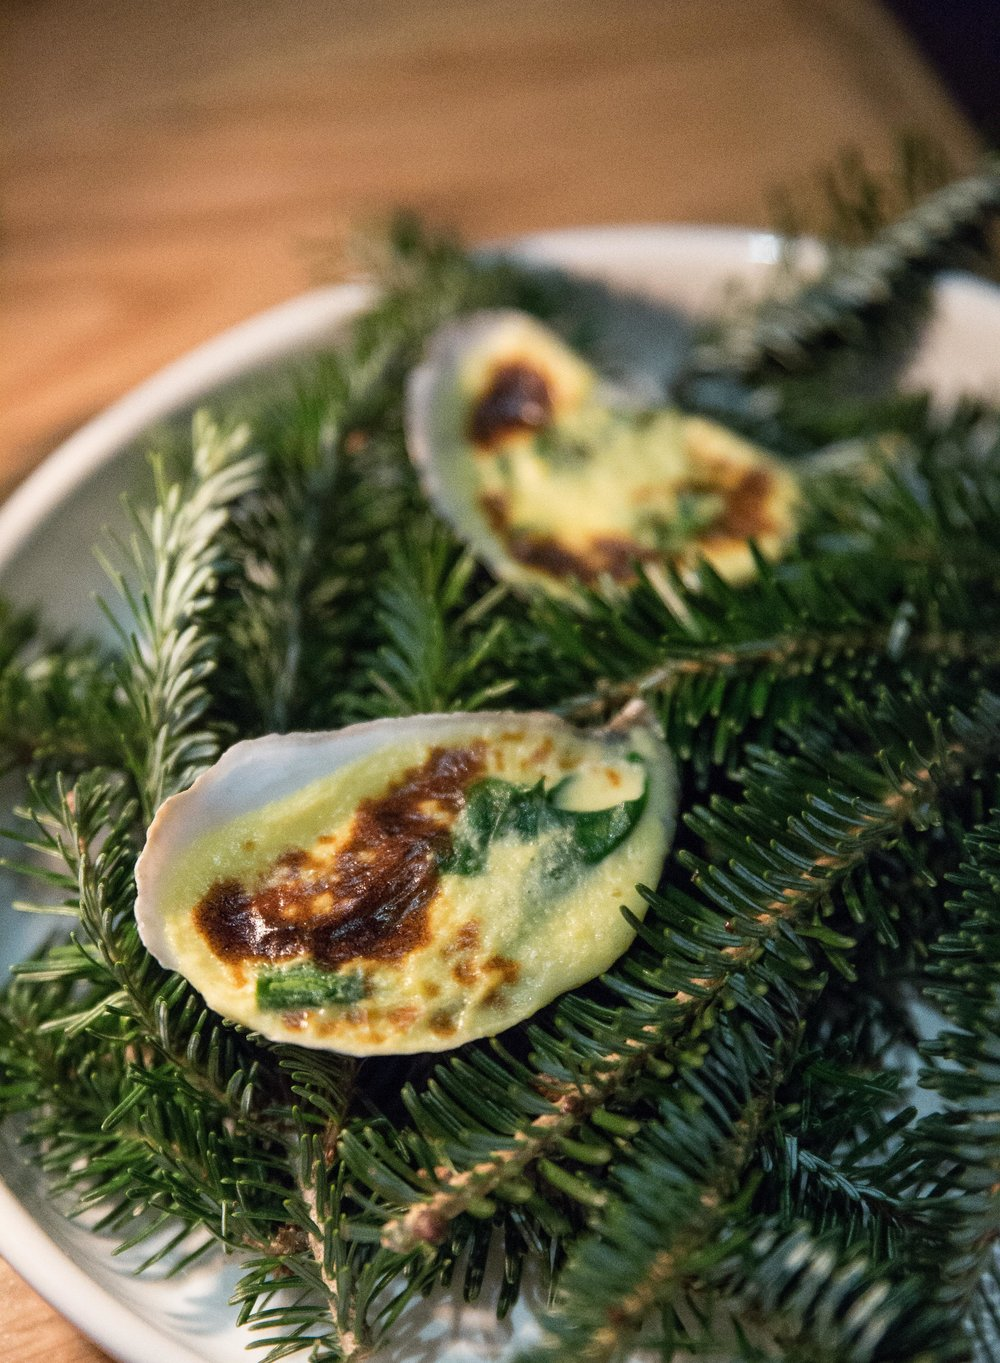 The Blue Point Oysters at Jema are served with hollandaise sauce and spinach. They're perfectly smooth and burst with Atlantic freshness.